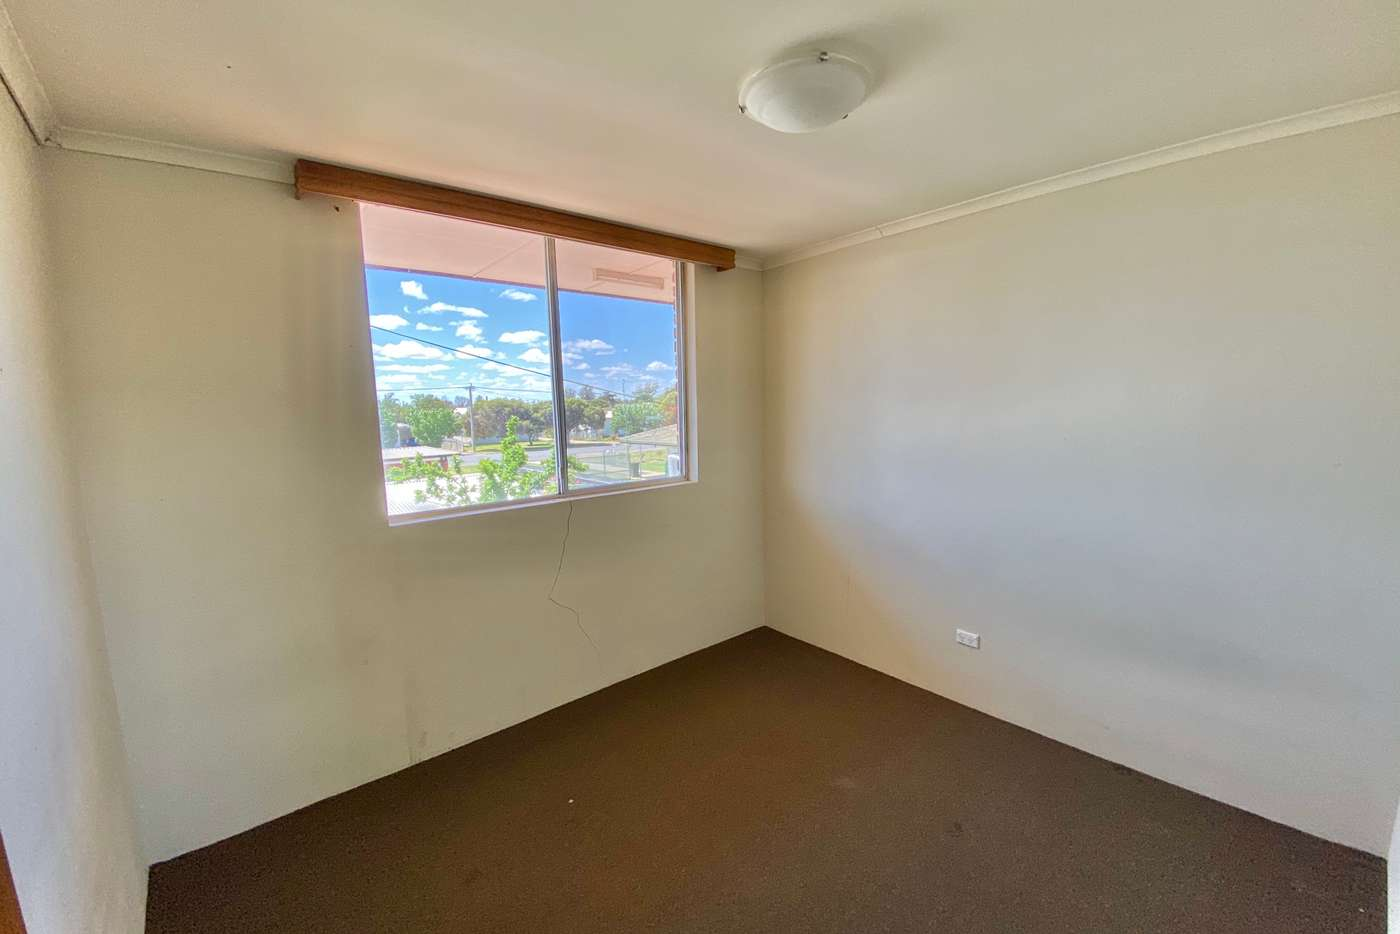 Seventh view of Homely house listing, 6/227 Edward Street, Hay NSW 2711